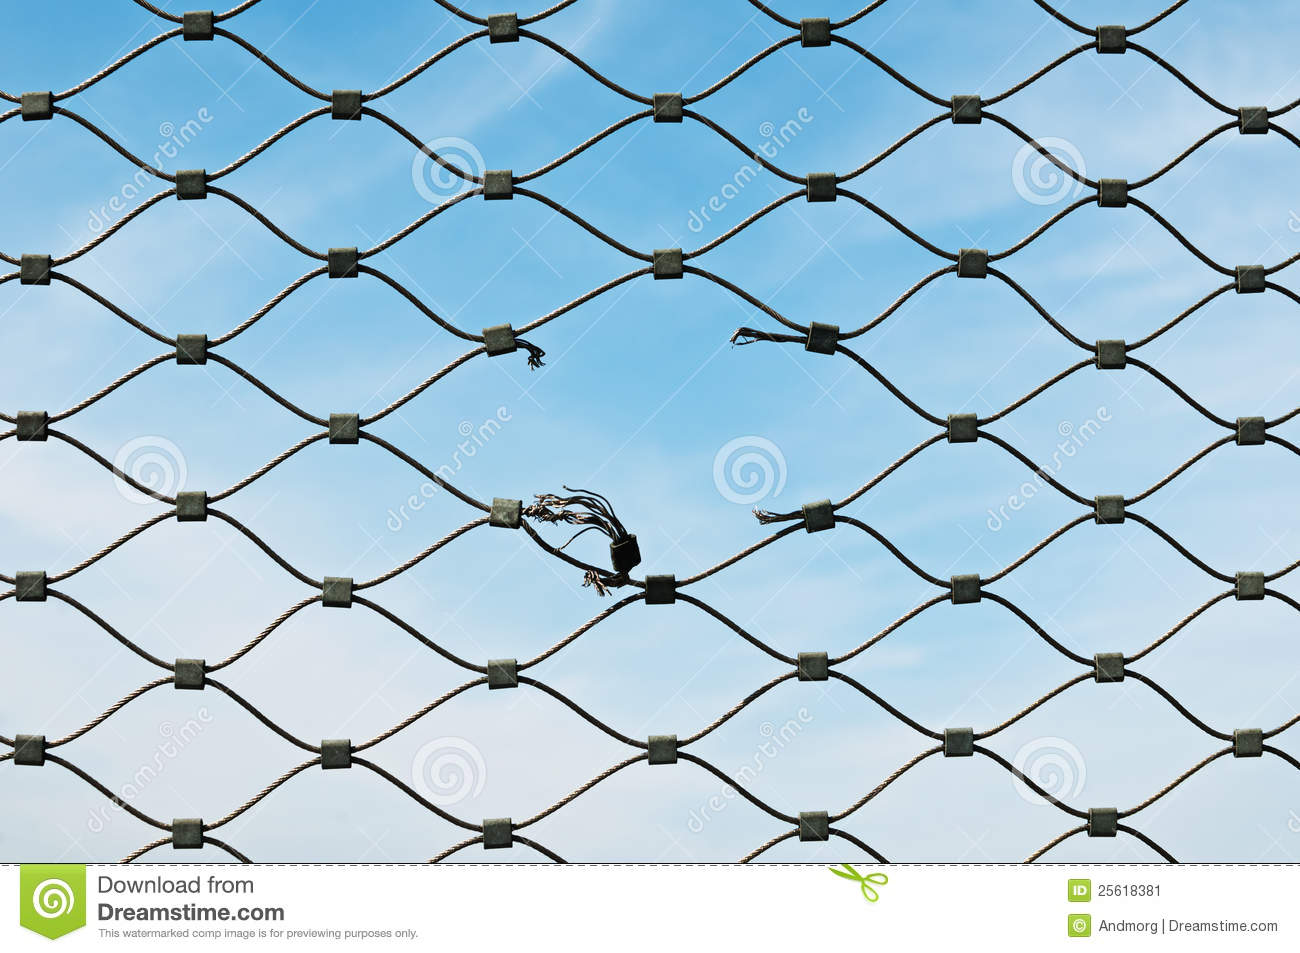 Gash on wire mesh stock image. Image of connection, high - 25618381